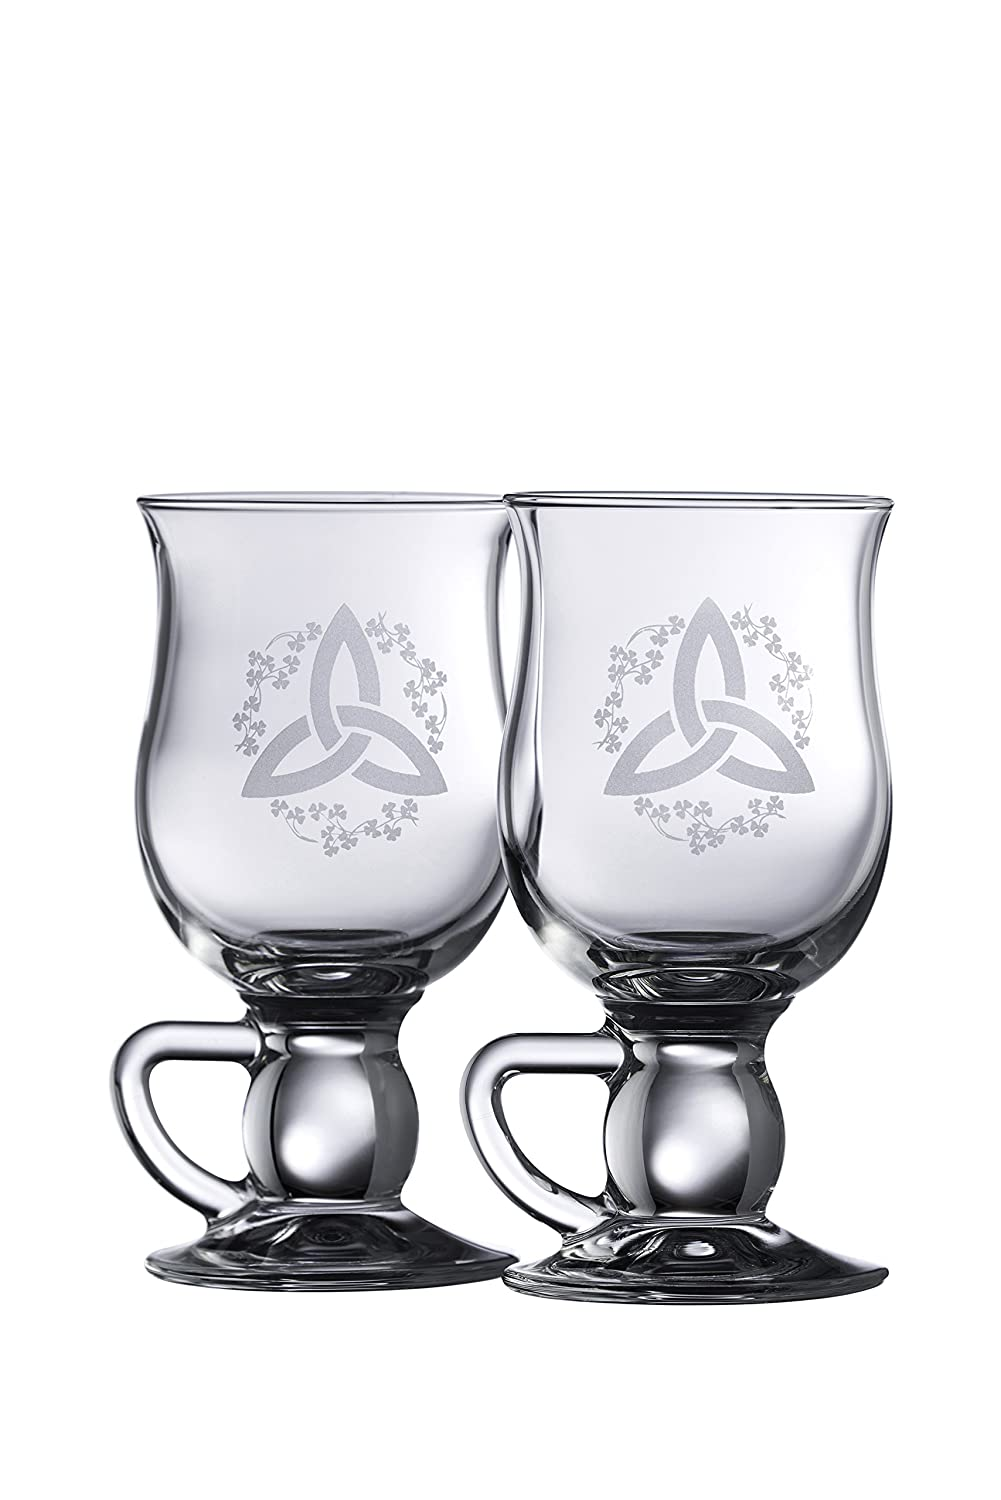 Galway Crystal Trinity Knot Shamrock Latte (1 Pair), Clear 20051/2US